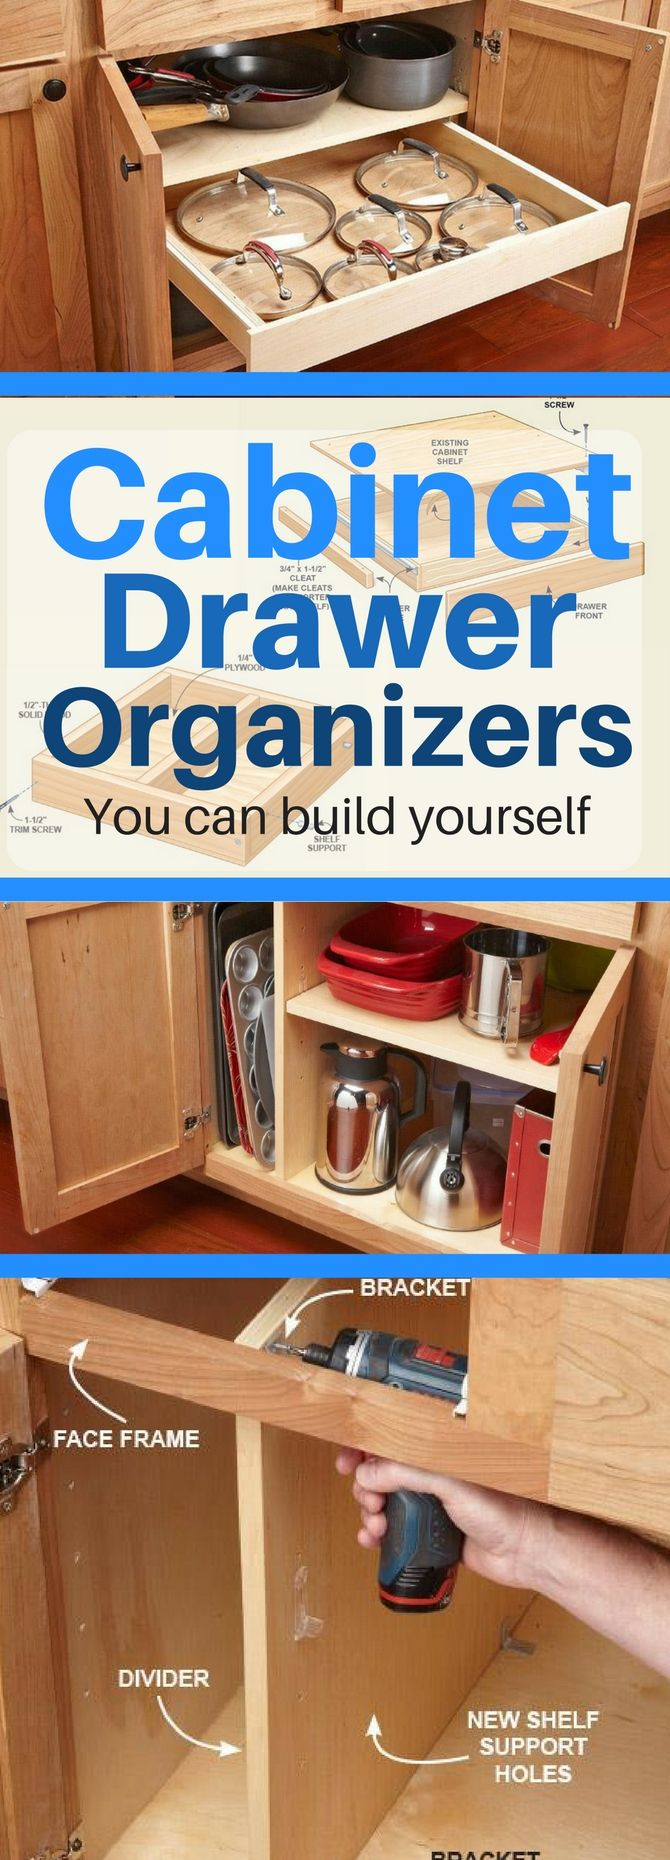 10 kitchen cabinet drawer organizers you can build yourself 10 kitchen cabinet drawer organizers you can build yourself solutioingenieria Gallery